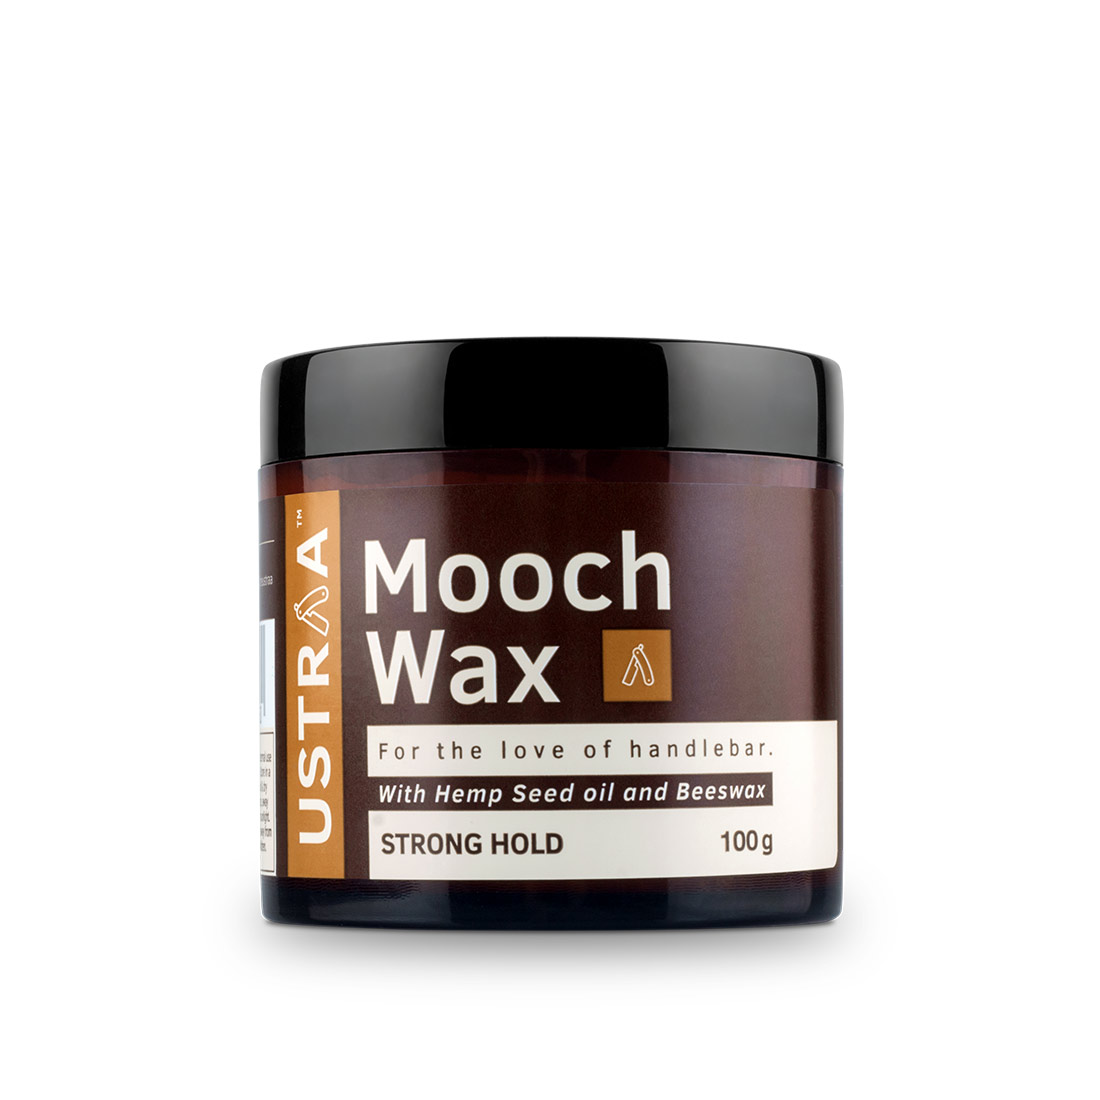 Beard & Mooch Wax Strong Hold - 100g